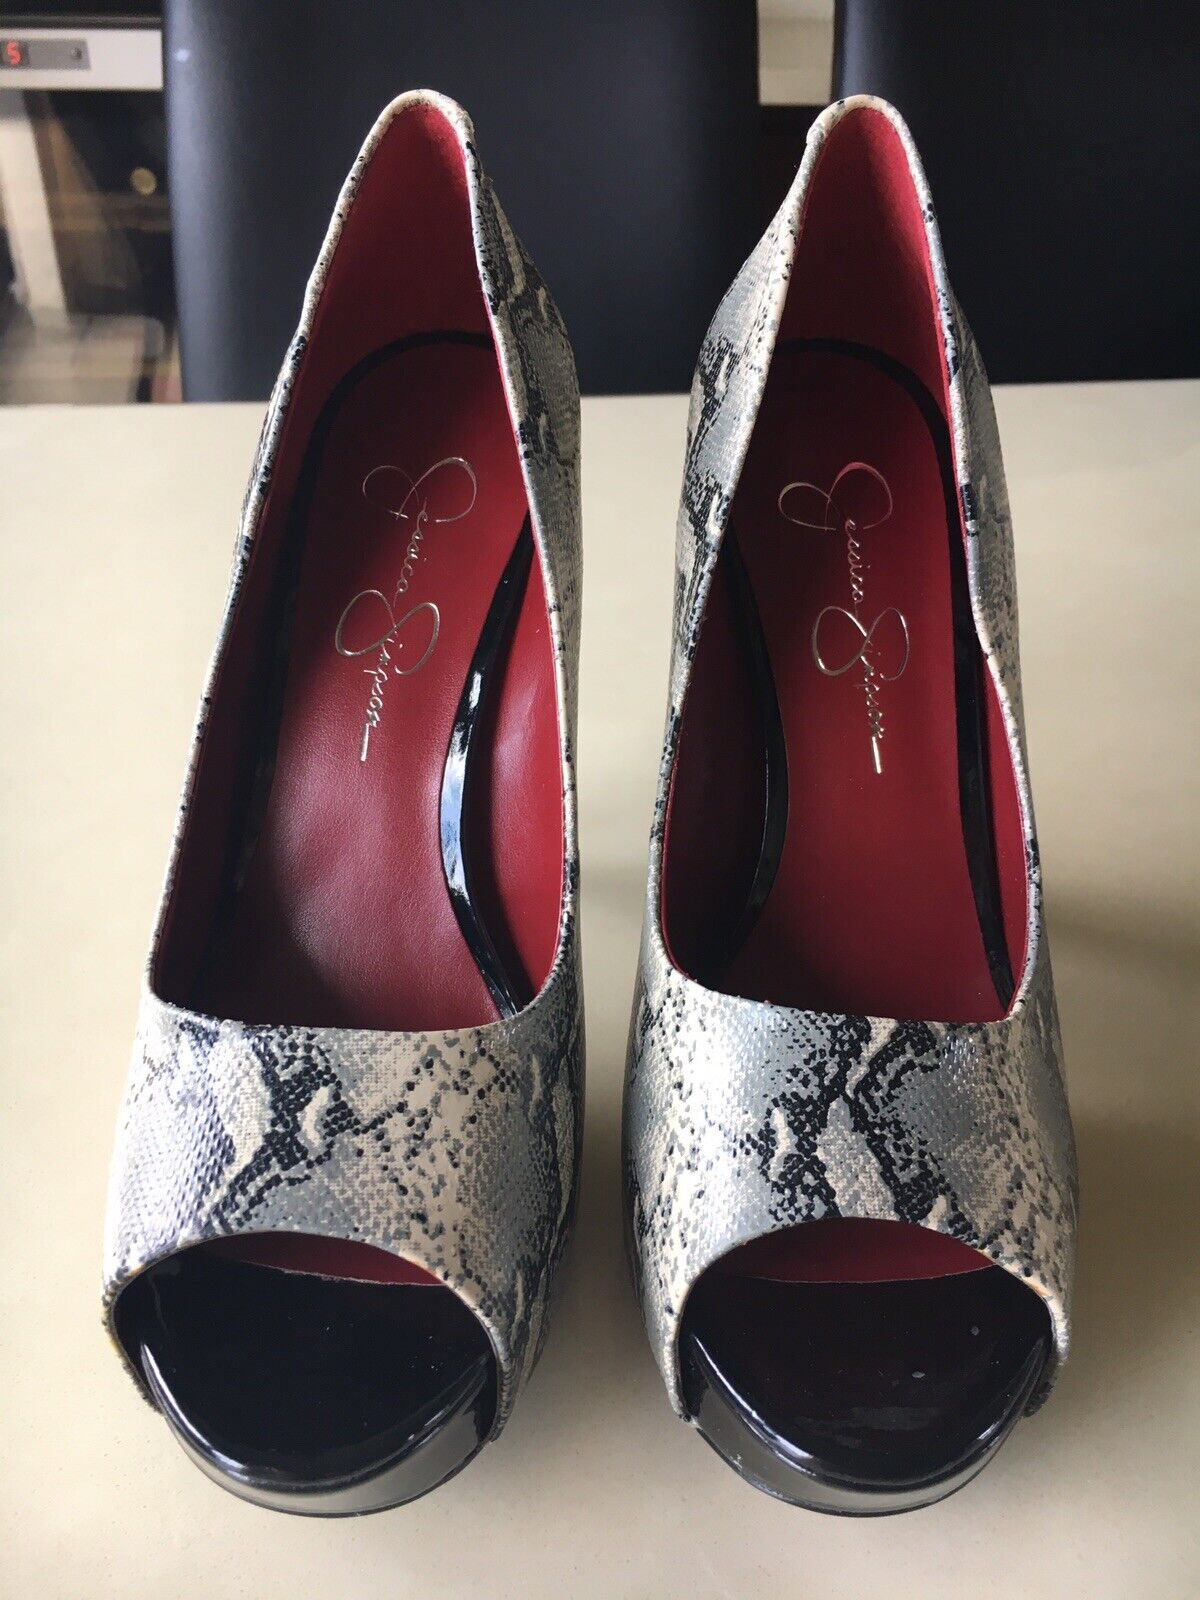 a74f0a635be2d Simpson Snake print peeptoe shoes size 6 with Black heels.New with ...